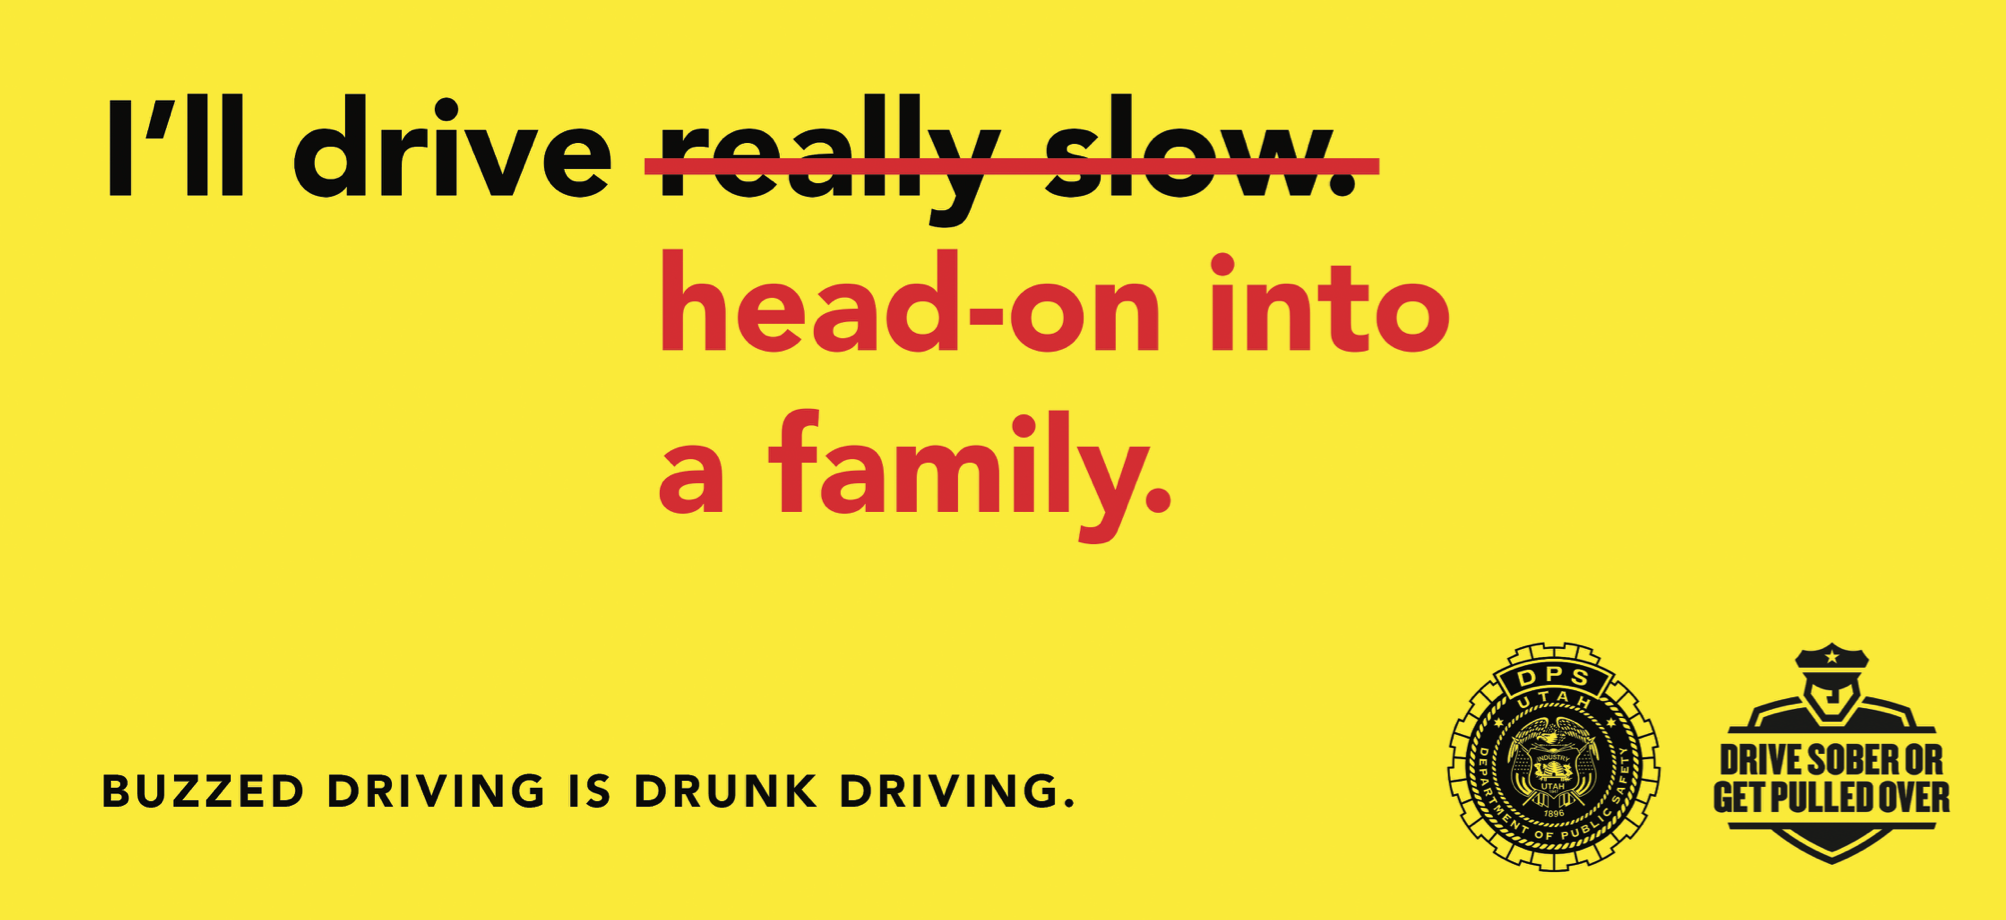 """Buzzed Driving is drunk driving - billboard with message """"I'll drive really slow"""" crossed out to read """"I'll drive head-on into a family"""""""